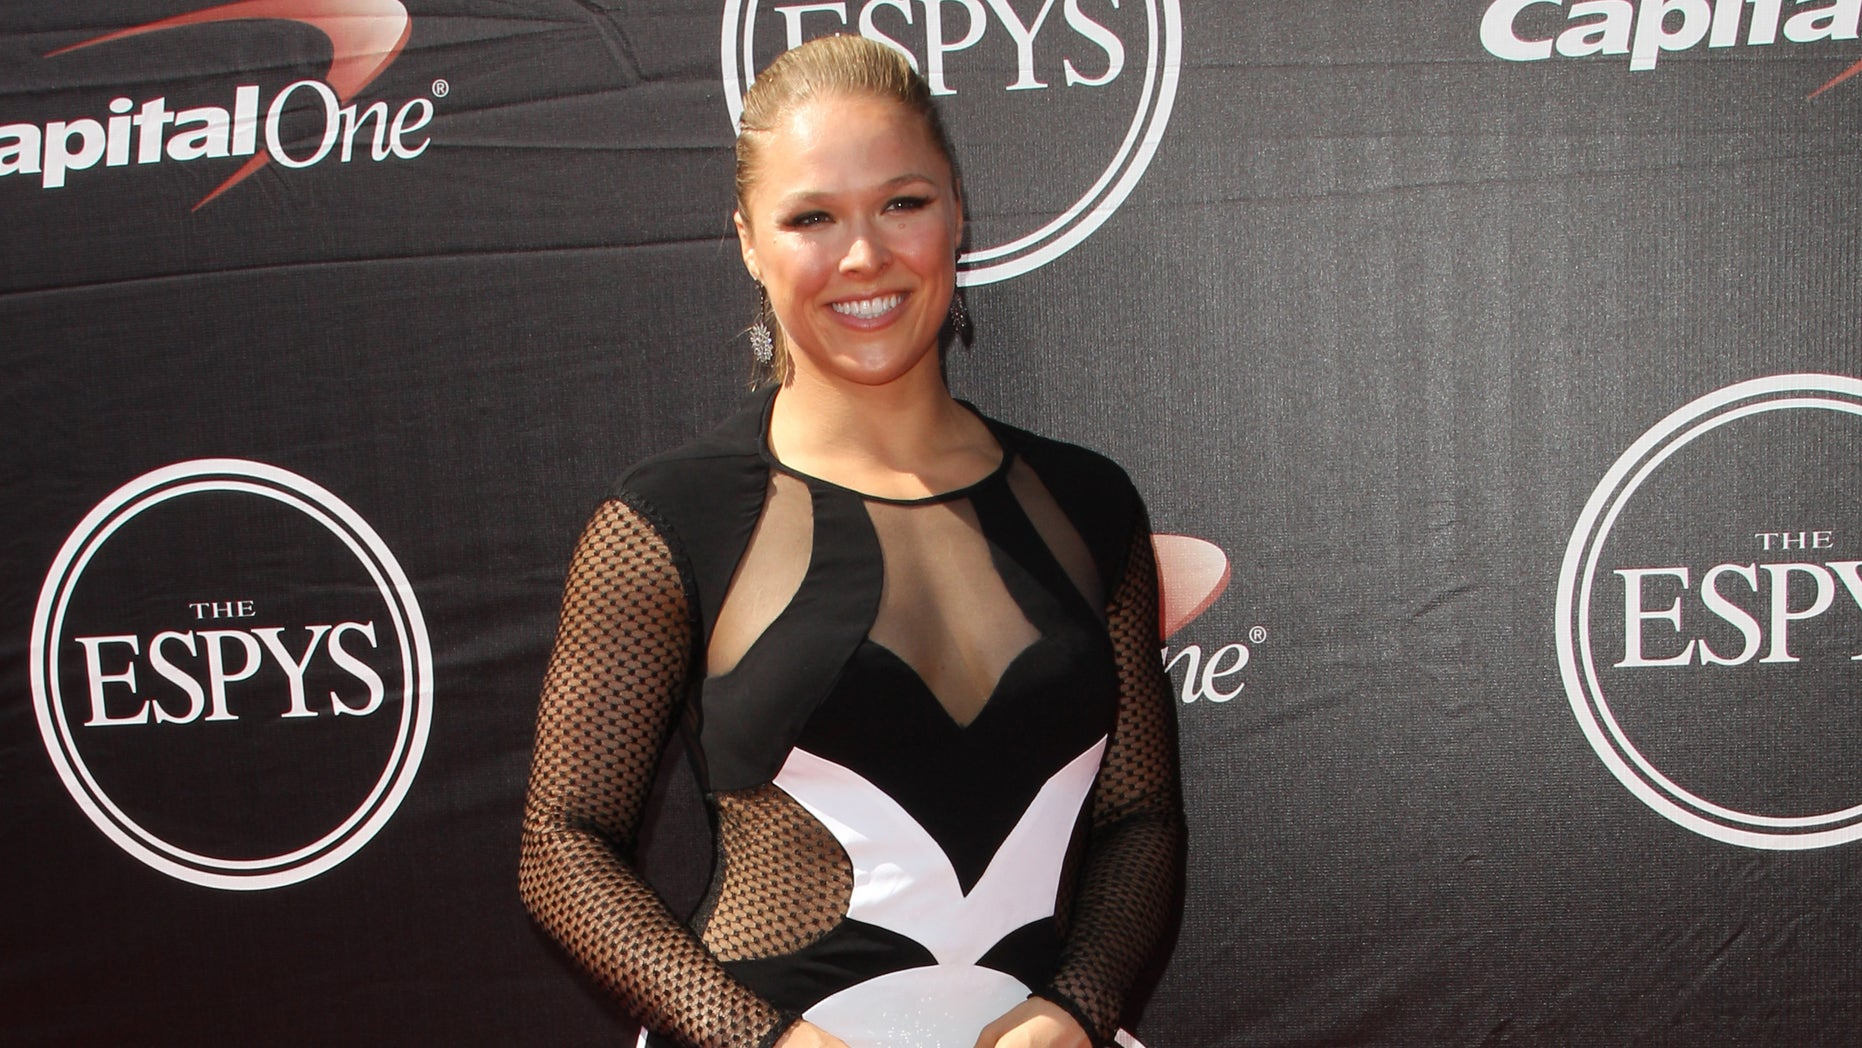 Ronda Rousey, UFC women's bantamweight champion, arrives at the ESPY Awards on Wednesday, July 15, 2015, in Los Angeles. (Photo by Paul A. Hebert/Invision/AP)